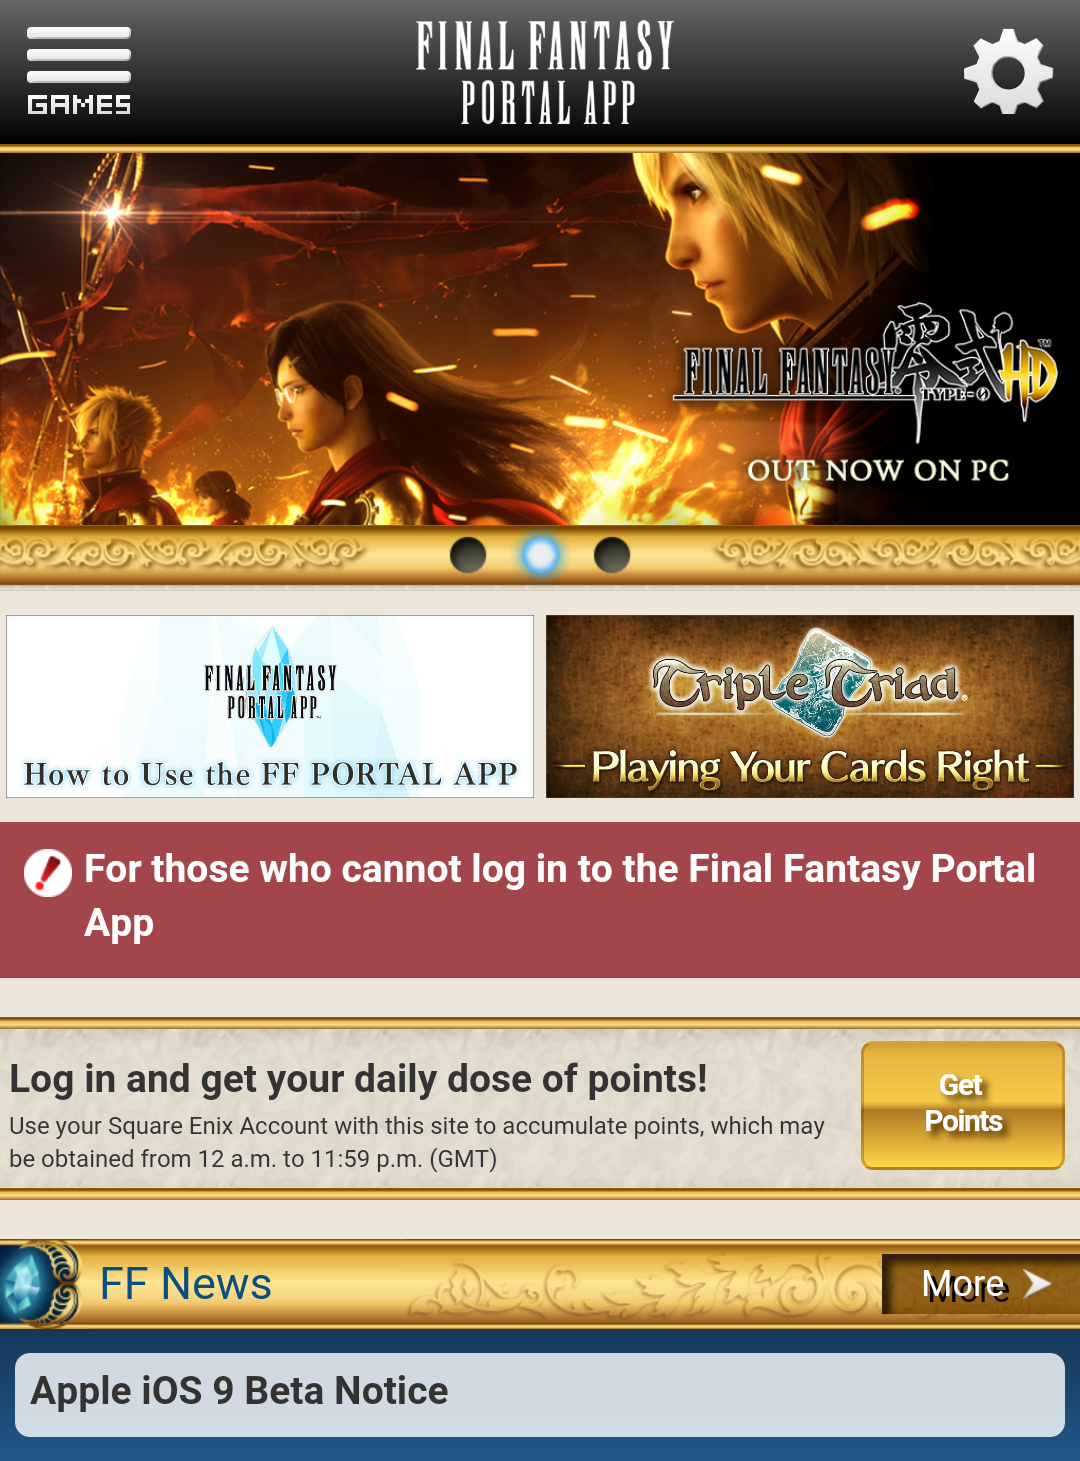 New SE App Leaves Something To Be Desired By Fans